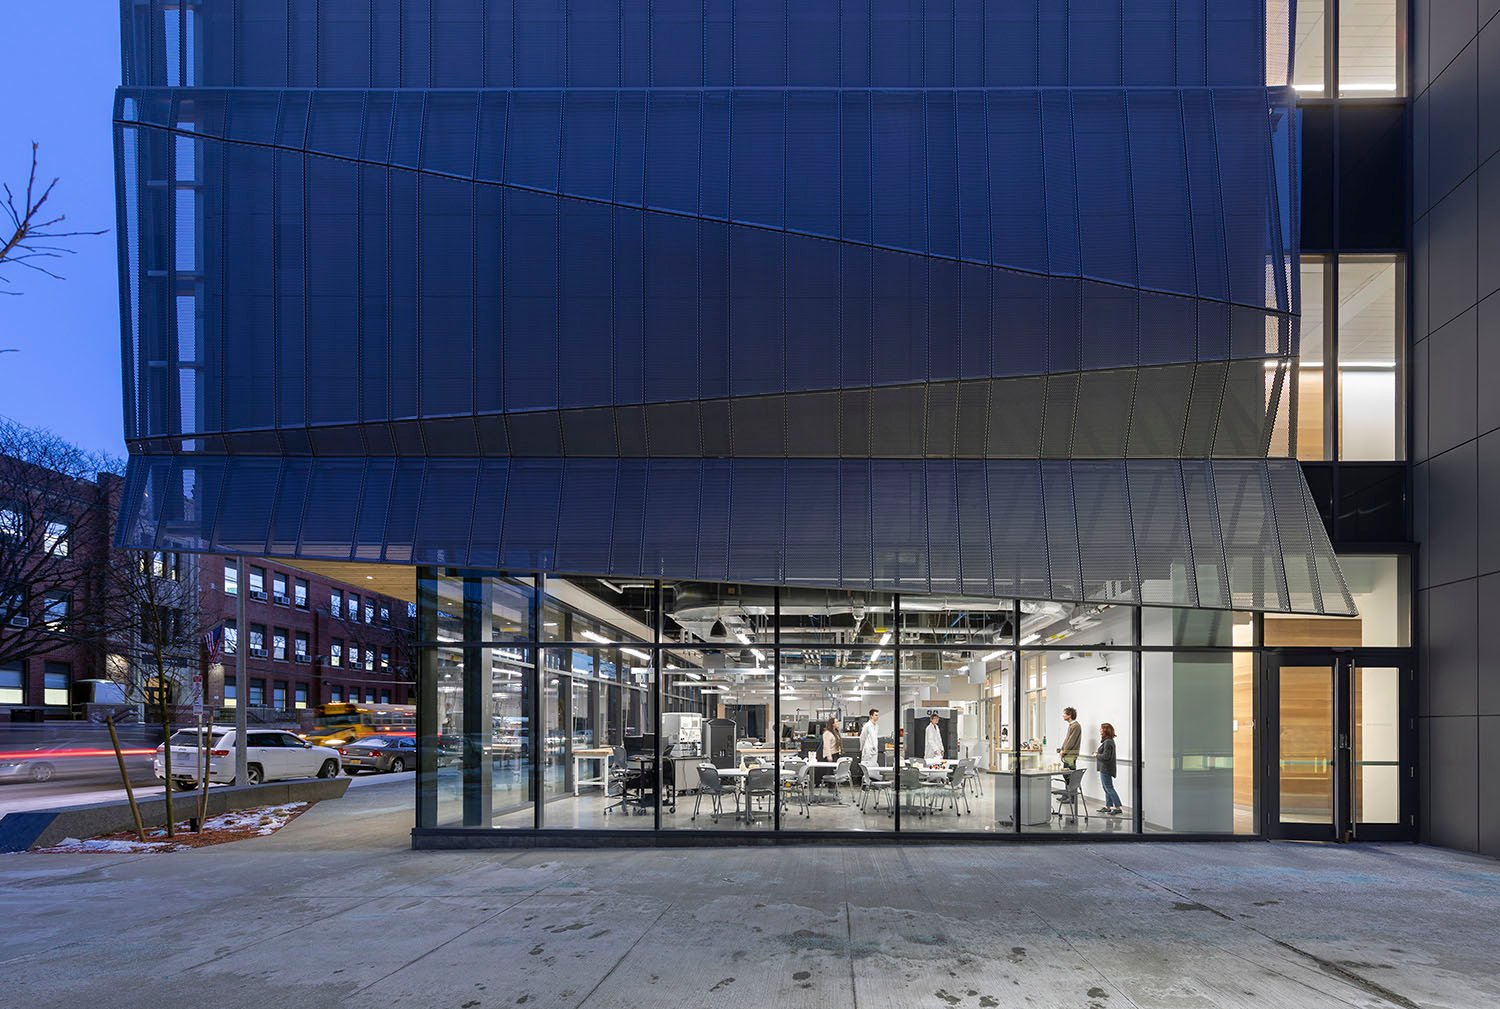 Transparent Showcase of the Digital Fabrication and Additive Manufacturing lab Albert Vecerka